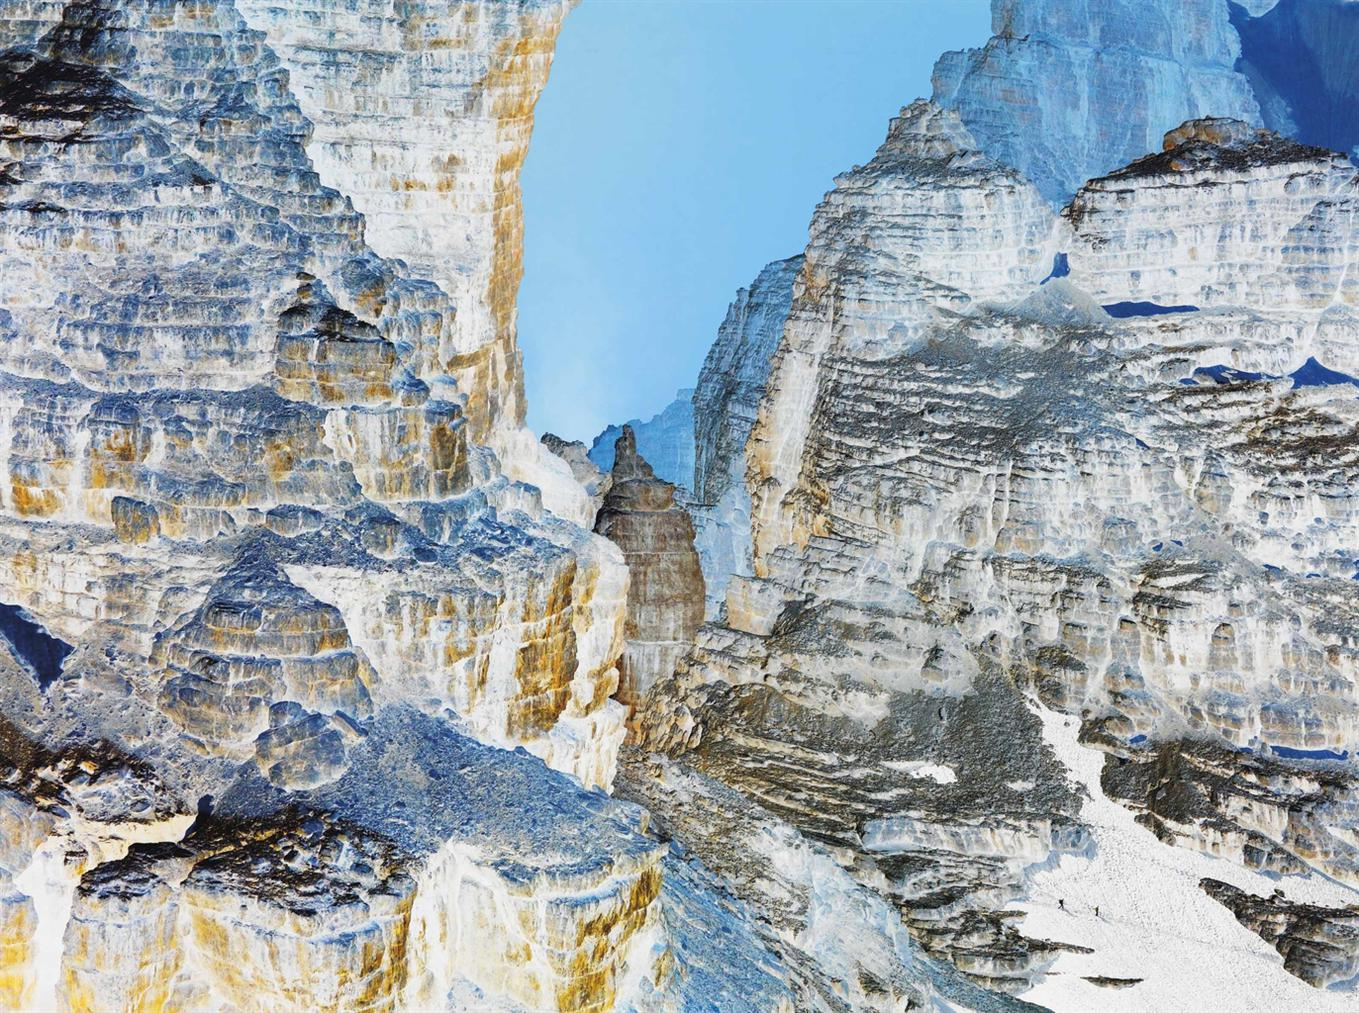 Olivo Barbieri-The Dolomites Project #7, 2010-2010